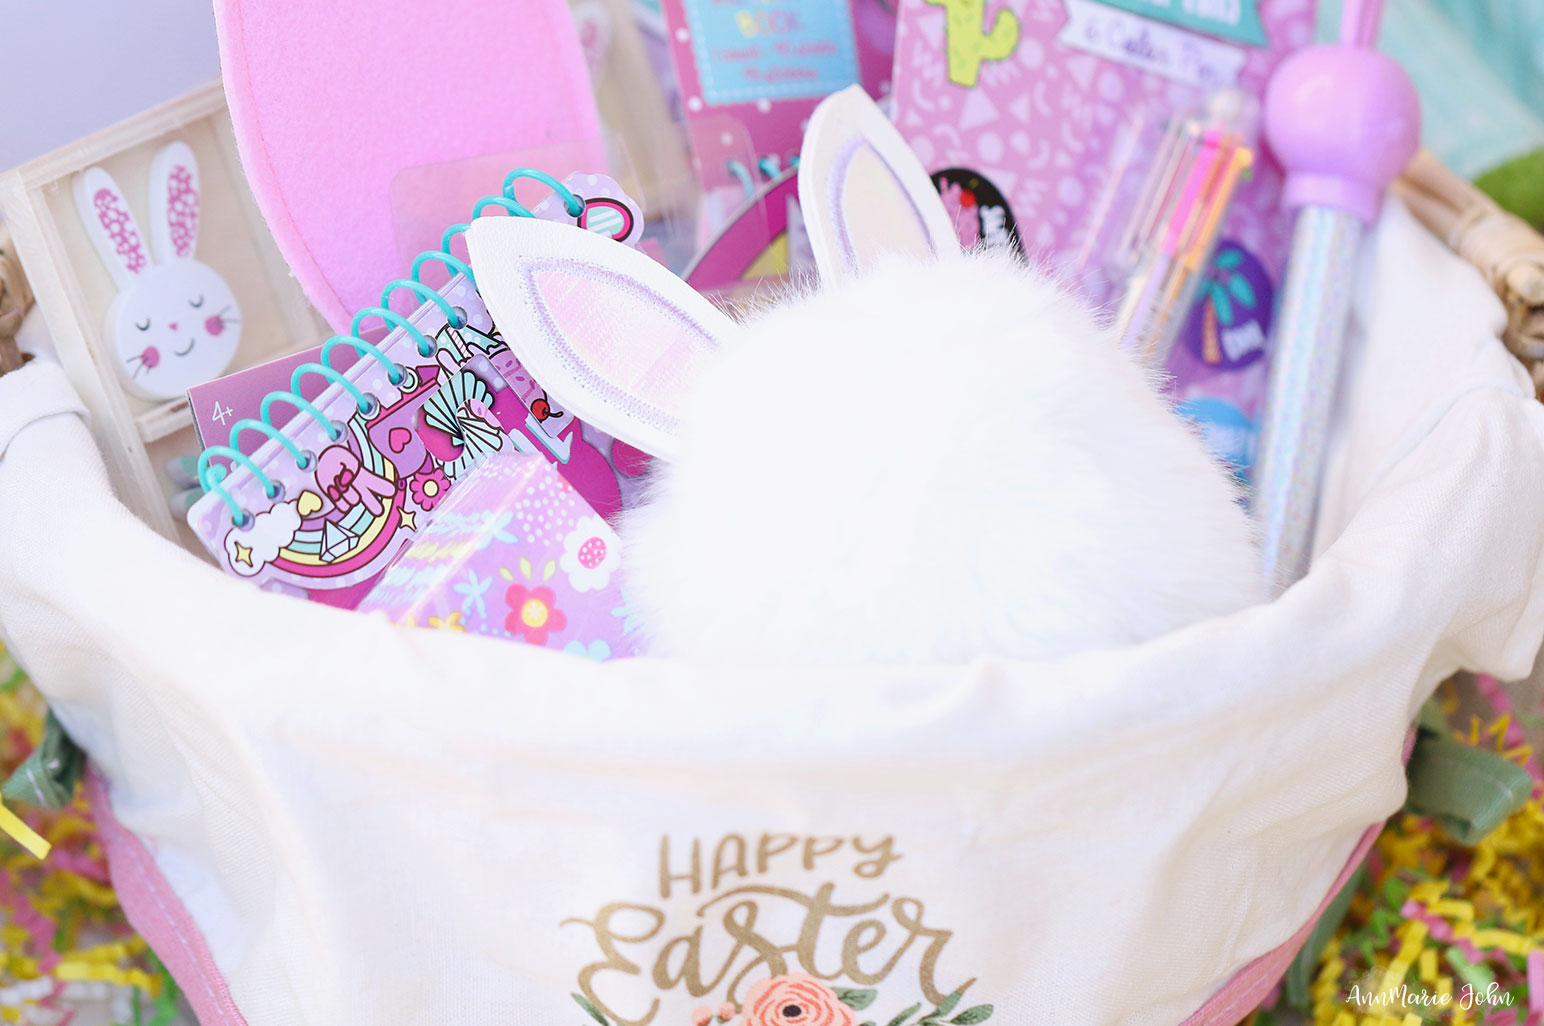 Non candy easter basket fillers annmarie john shopkins or ponies or whatever your child is into now musical instruments magic tricks gag gifts like a whoopee cushion books coloring books negle Gallery